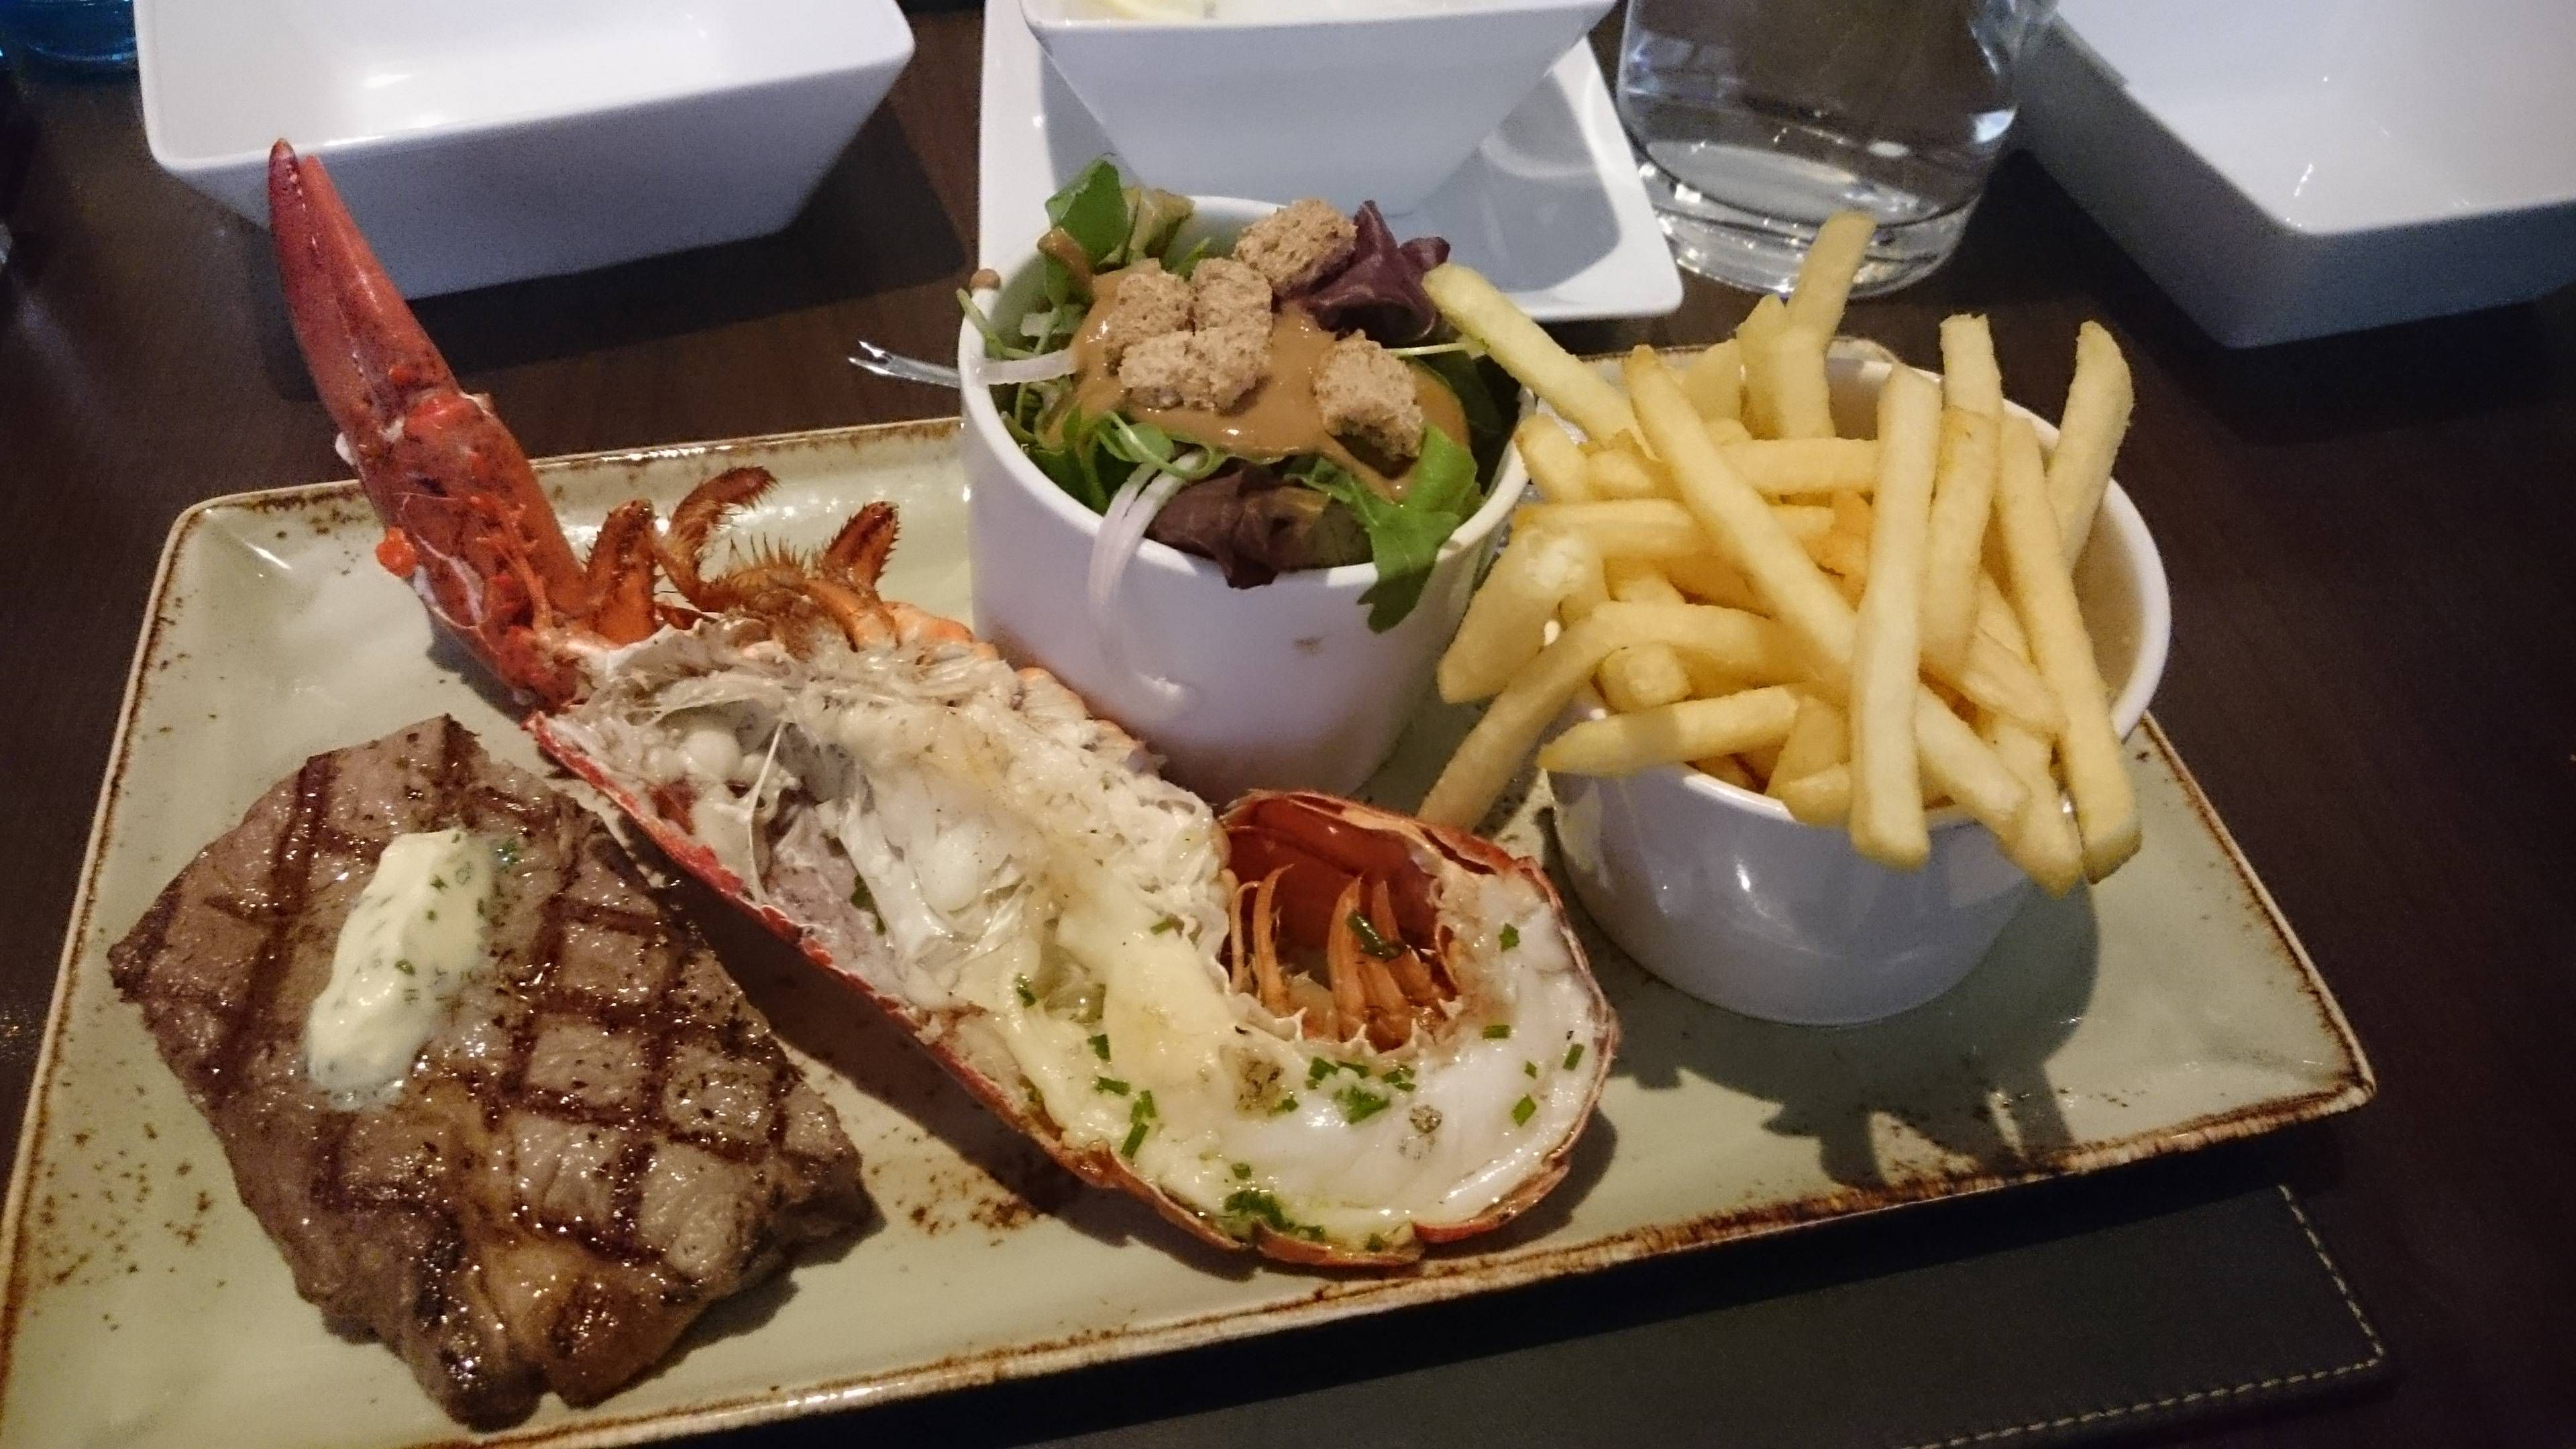 Steak And Lobster From Steak And Lobster Heathrow London R Food Steak And Lobster Food Food And Drink